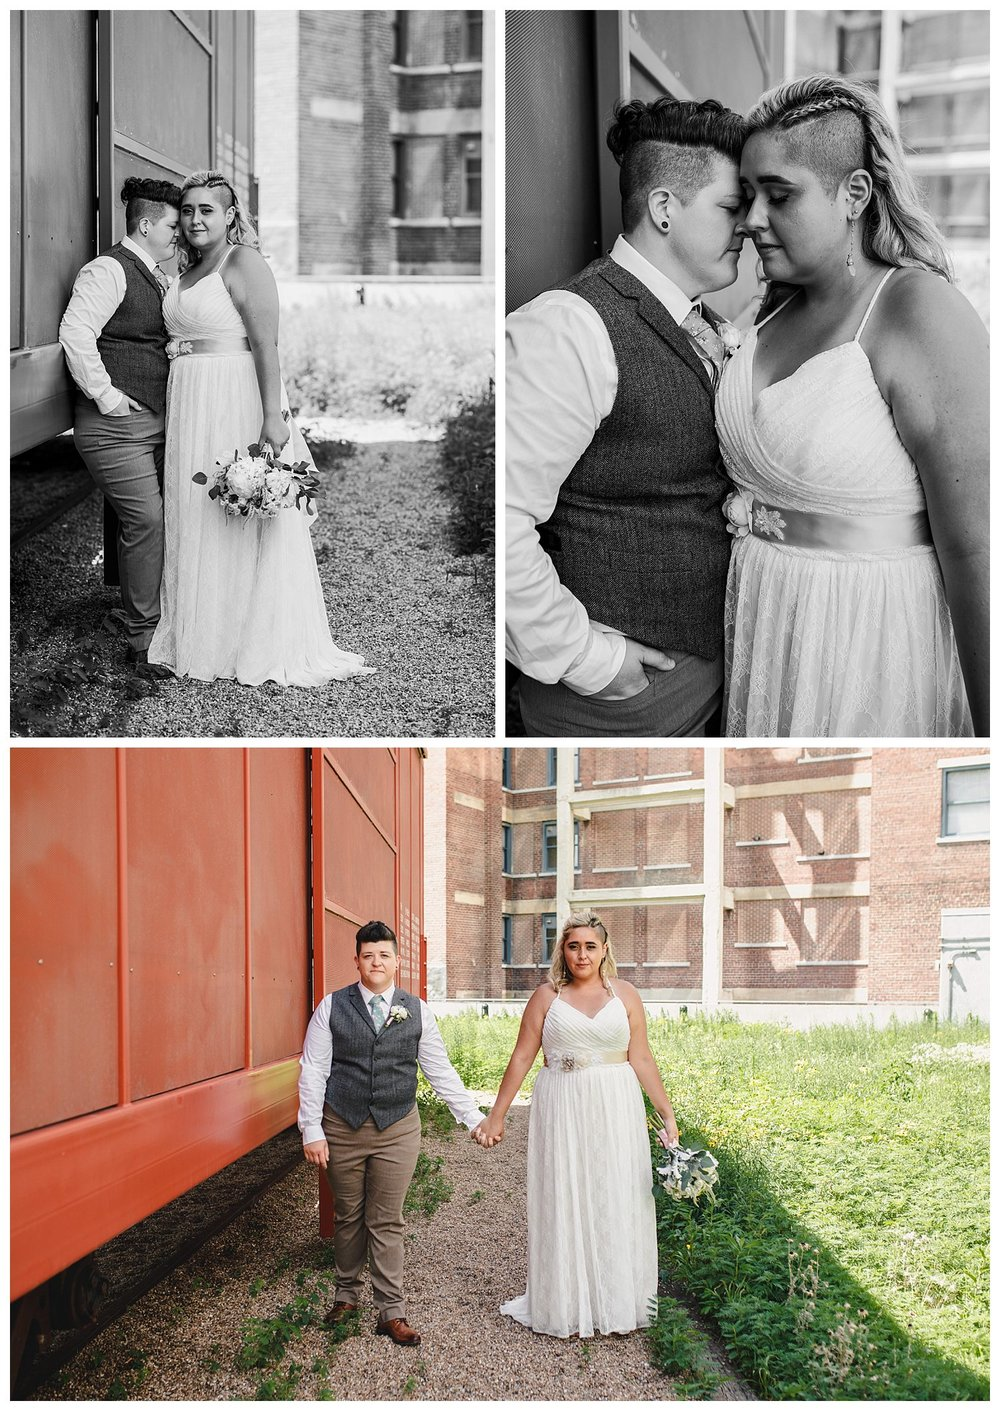 Kelsey_Diane_Photography_The_Vow_Exchange_Kansas_City_LGBT_Friendly_Wedding_Photographer_Kansas_City_Scout_Ica_0714.jpg